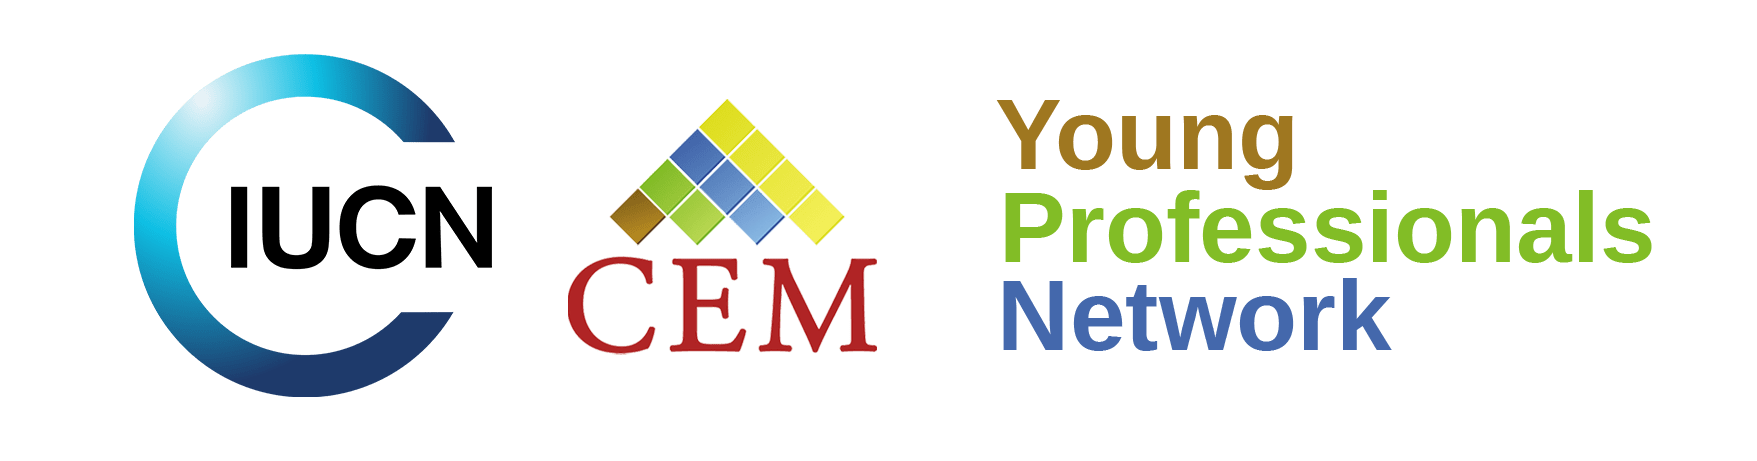 IUCN CEM Young Professionals Network